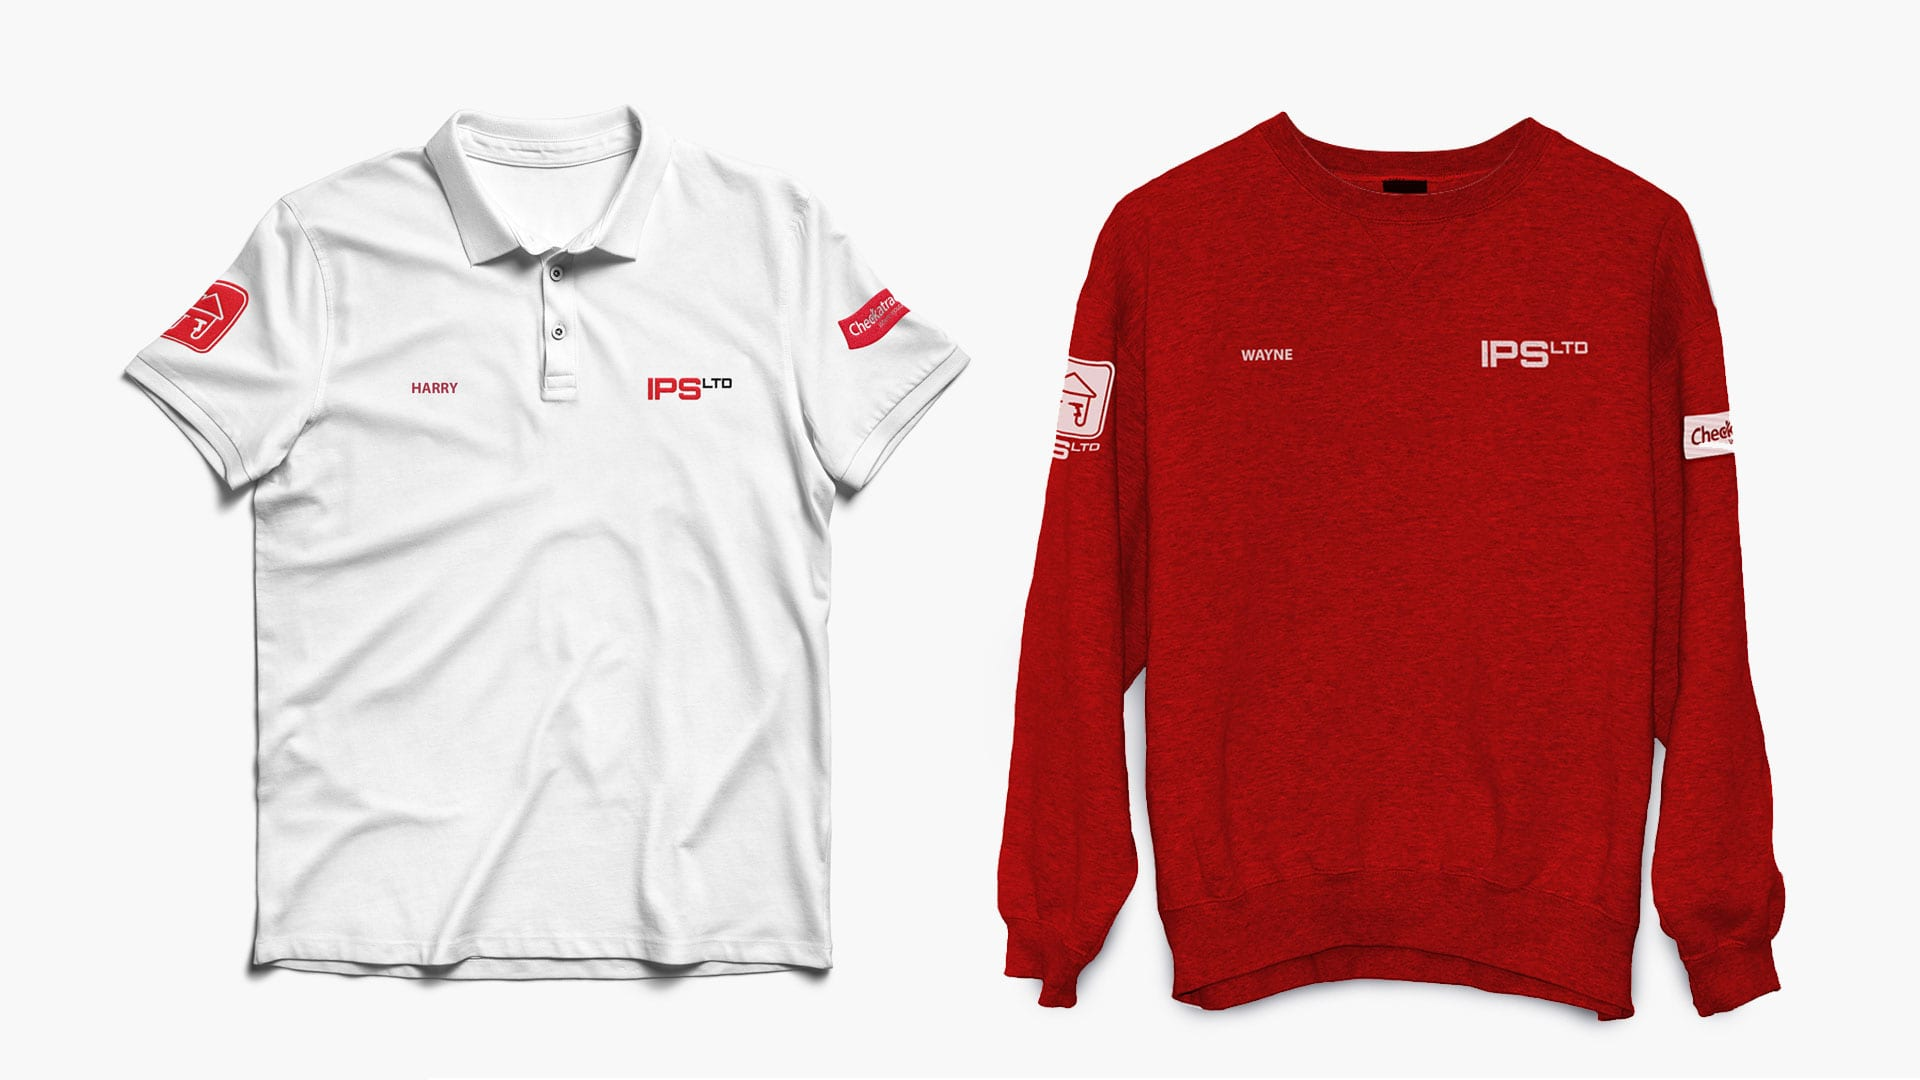 Impress Property Services Limited staff uniforms design prints red and white